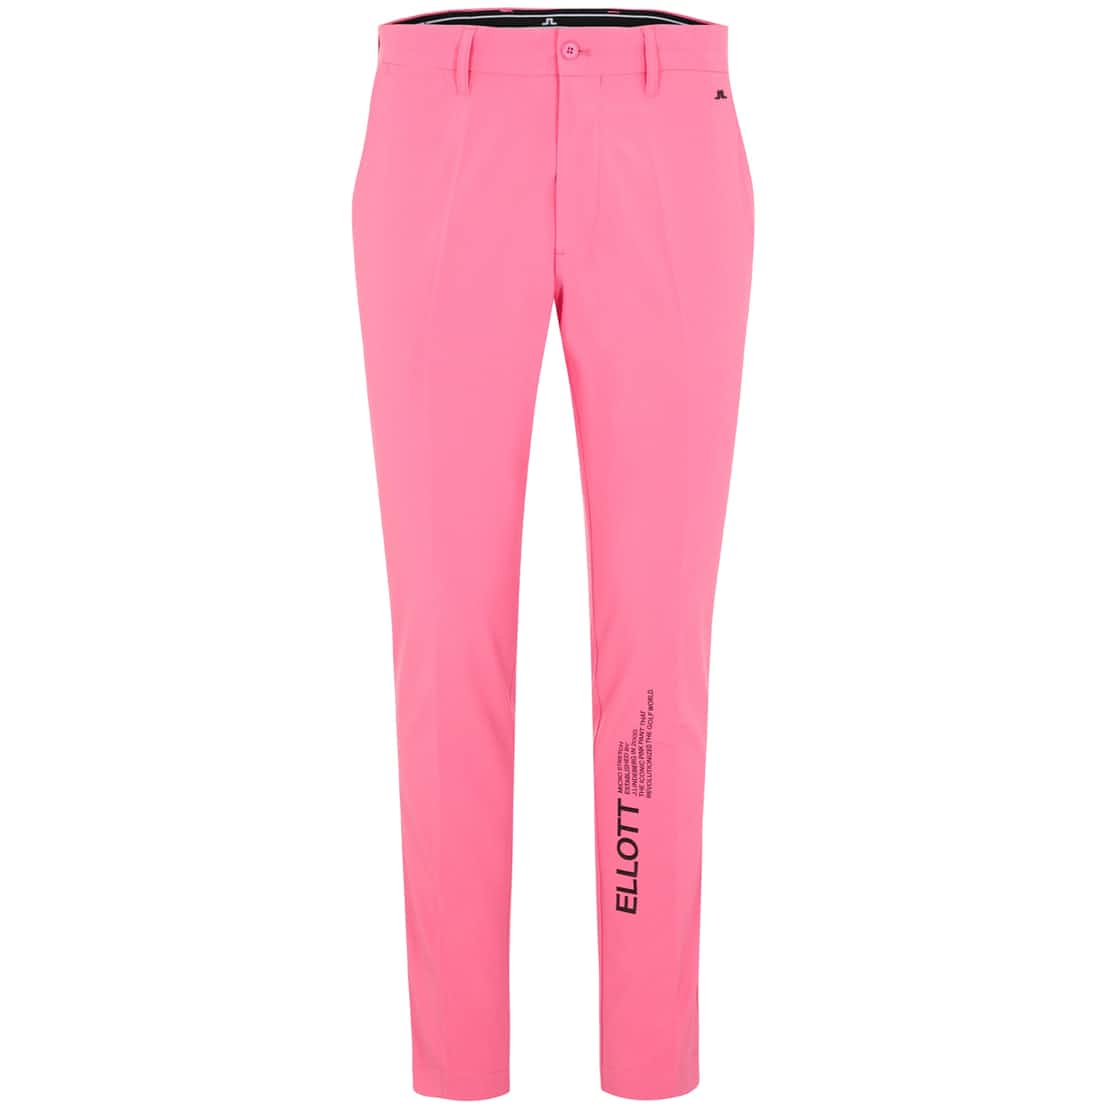 Ellott Archived Micro Stretch Pop Pink - SS20